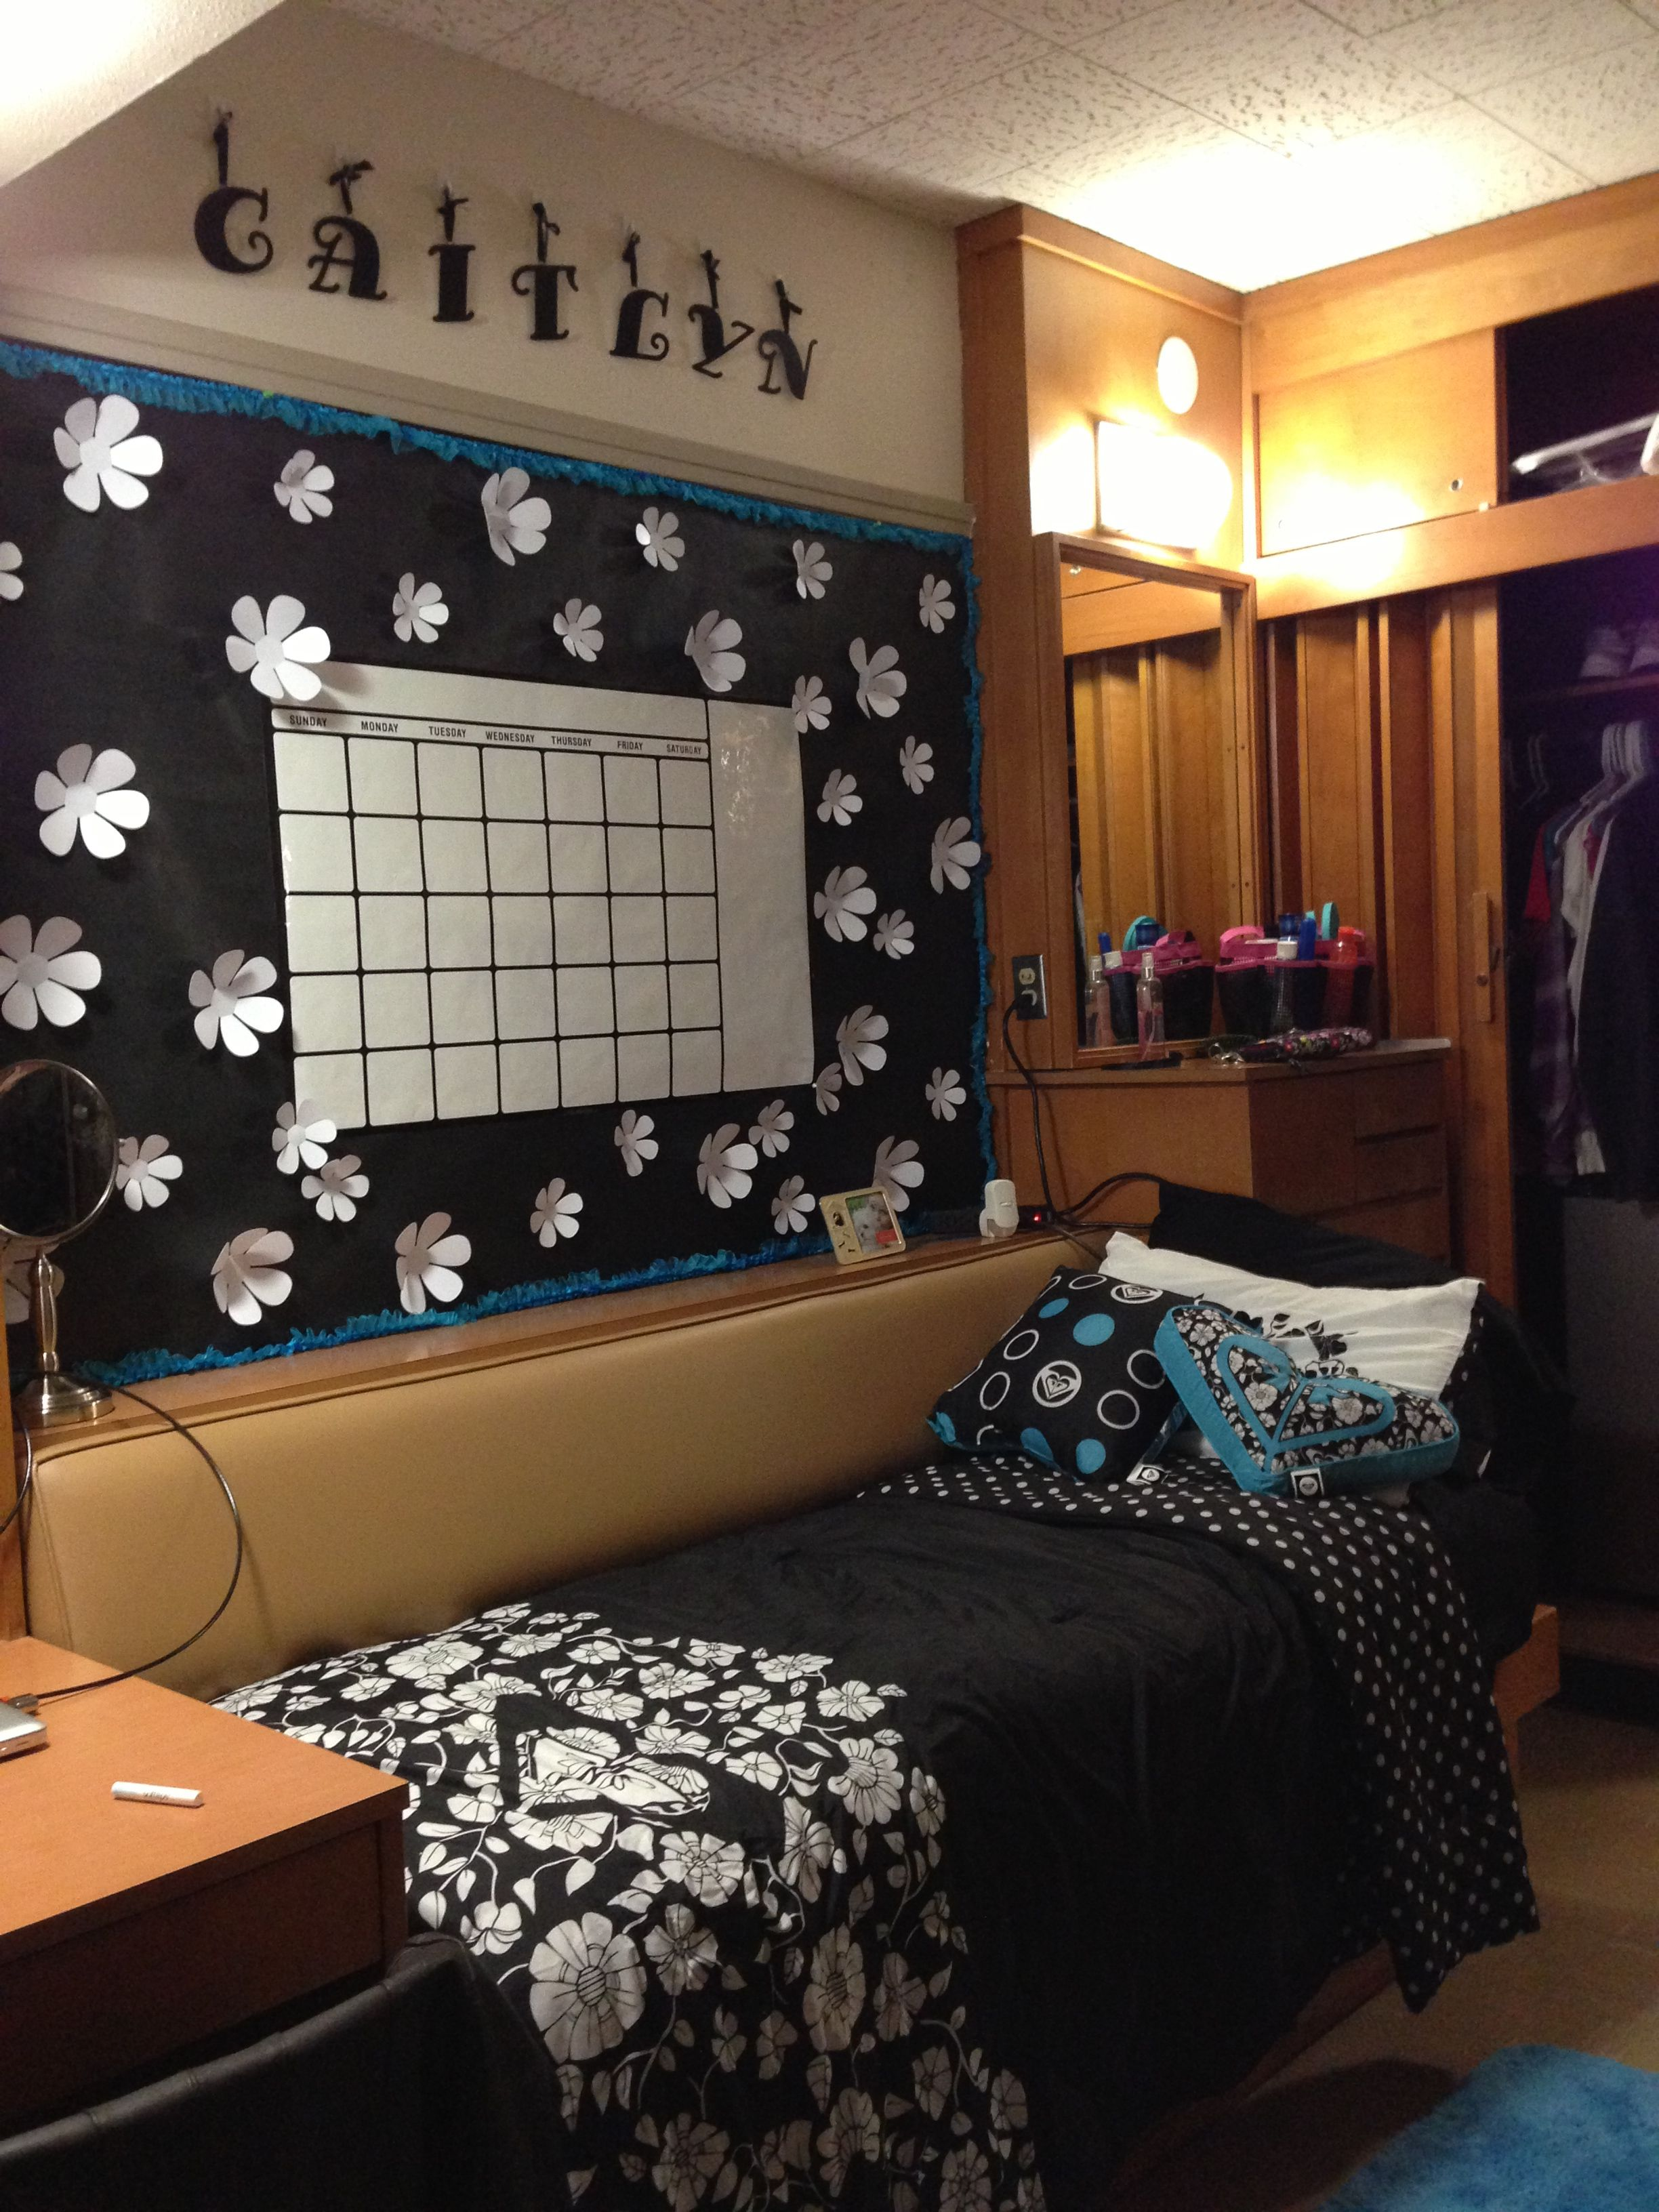 My Hulen/Clement Dorm Room At Texas Tech Good View Of The Dresser, Closet  And Upper Storage.